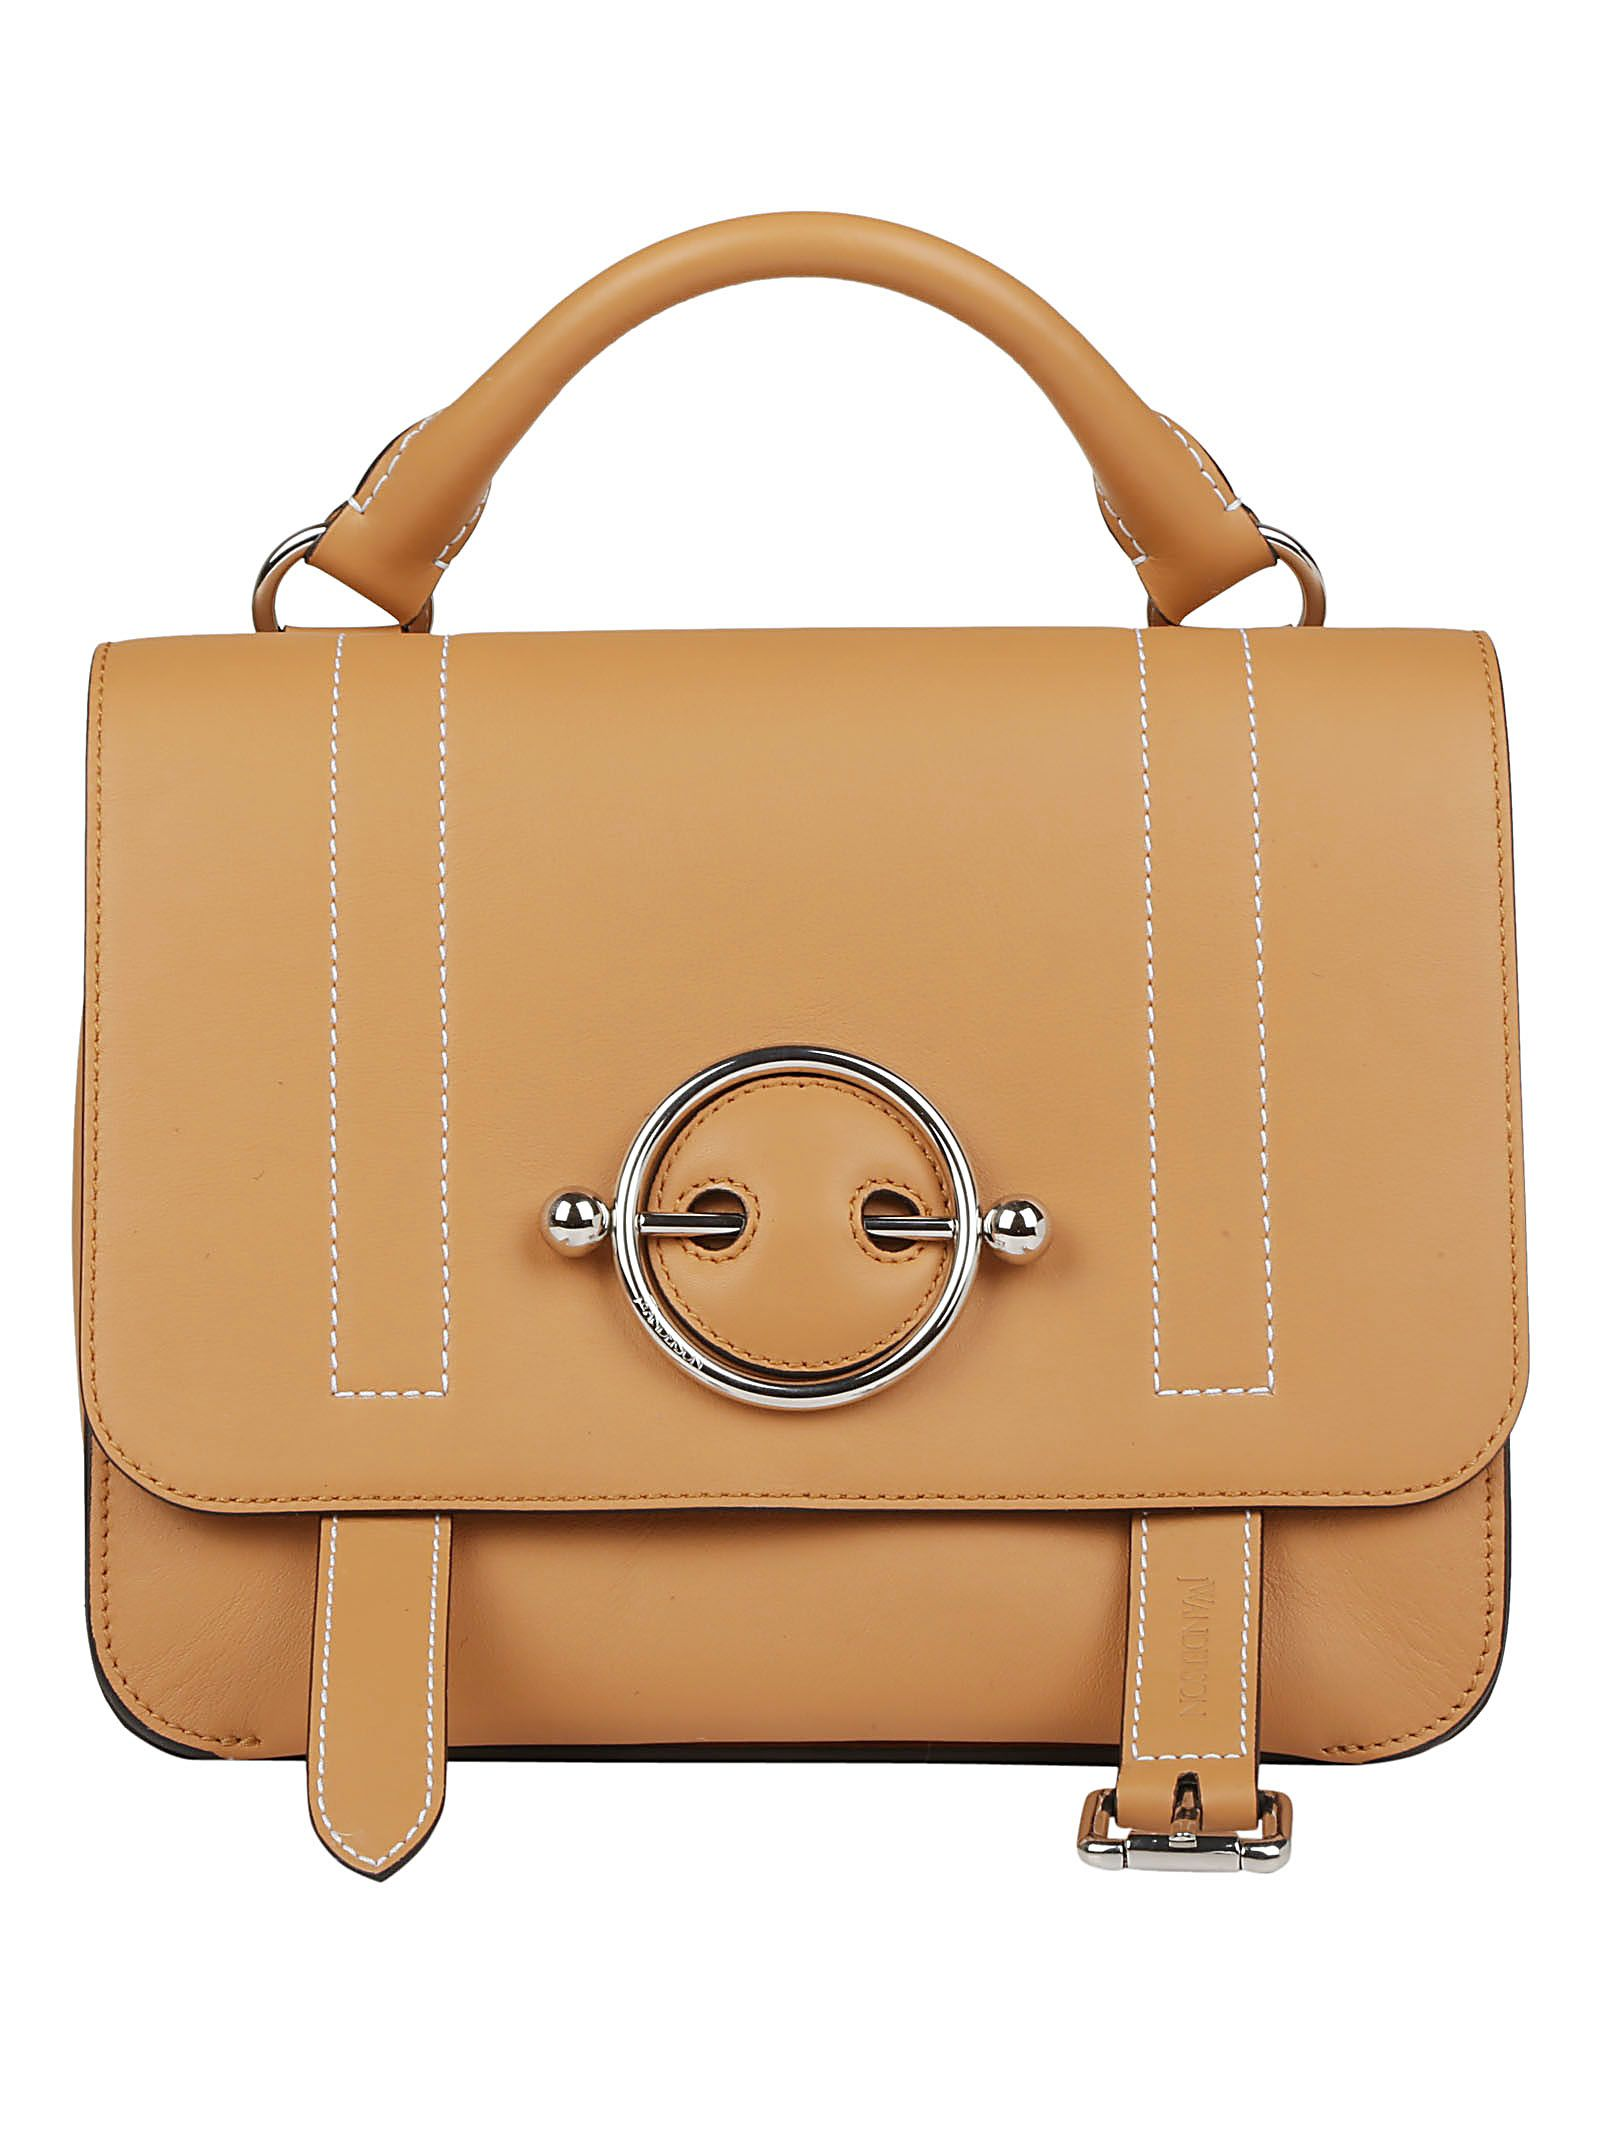 Jw Anderson Disc Satchel Bag